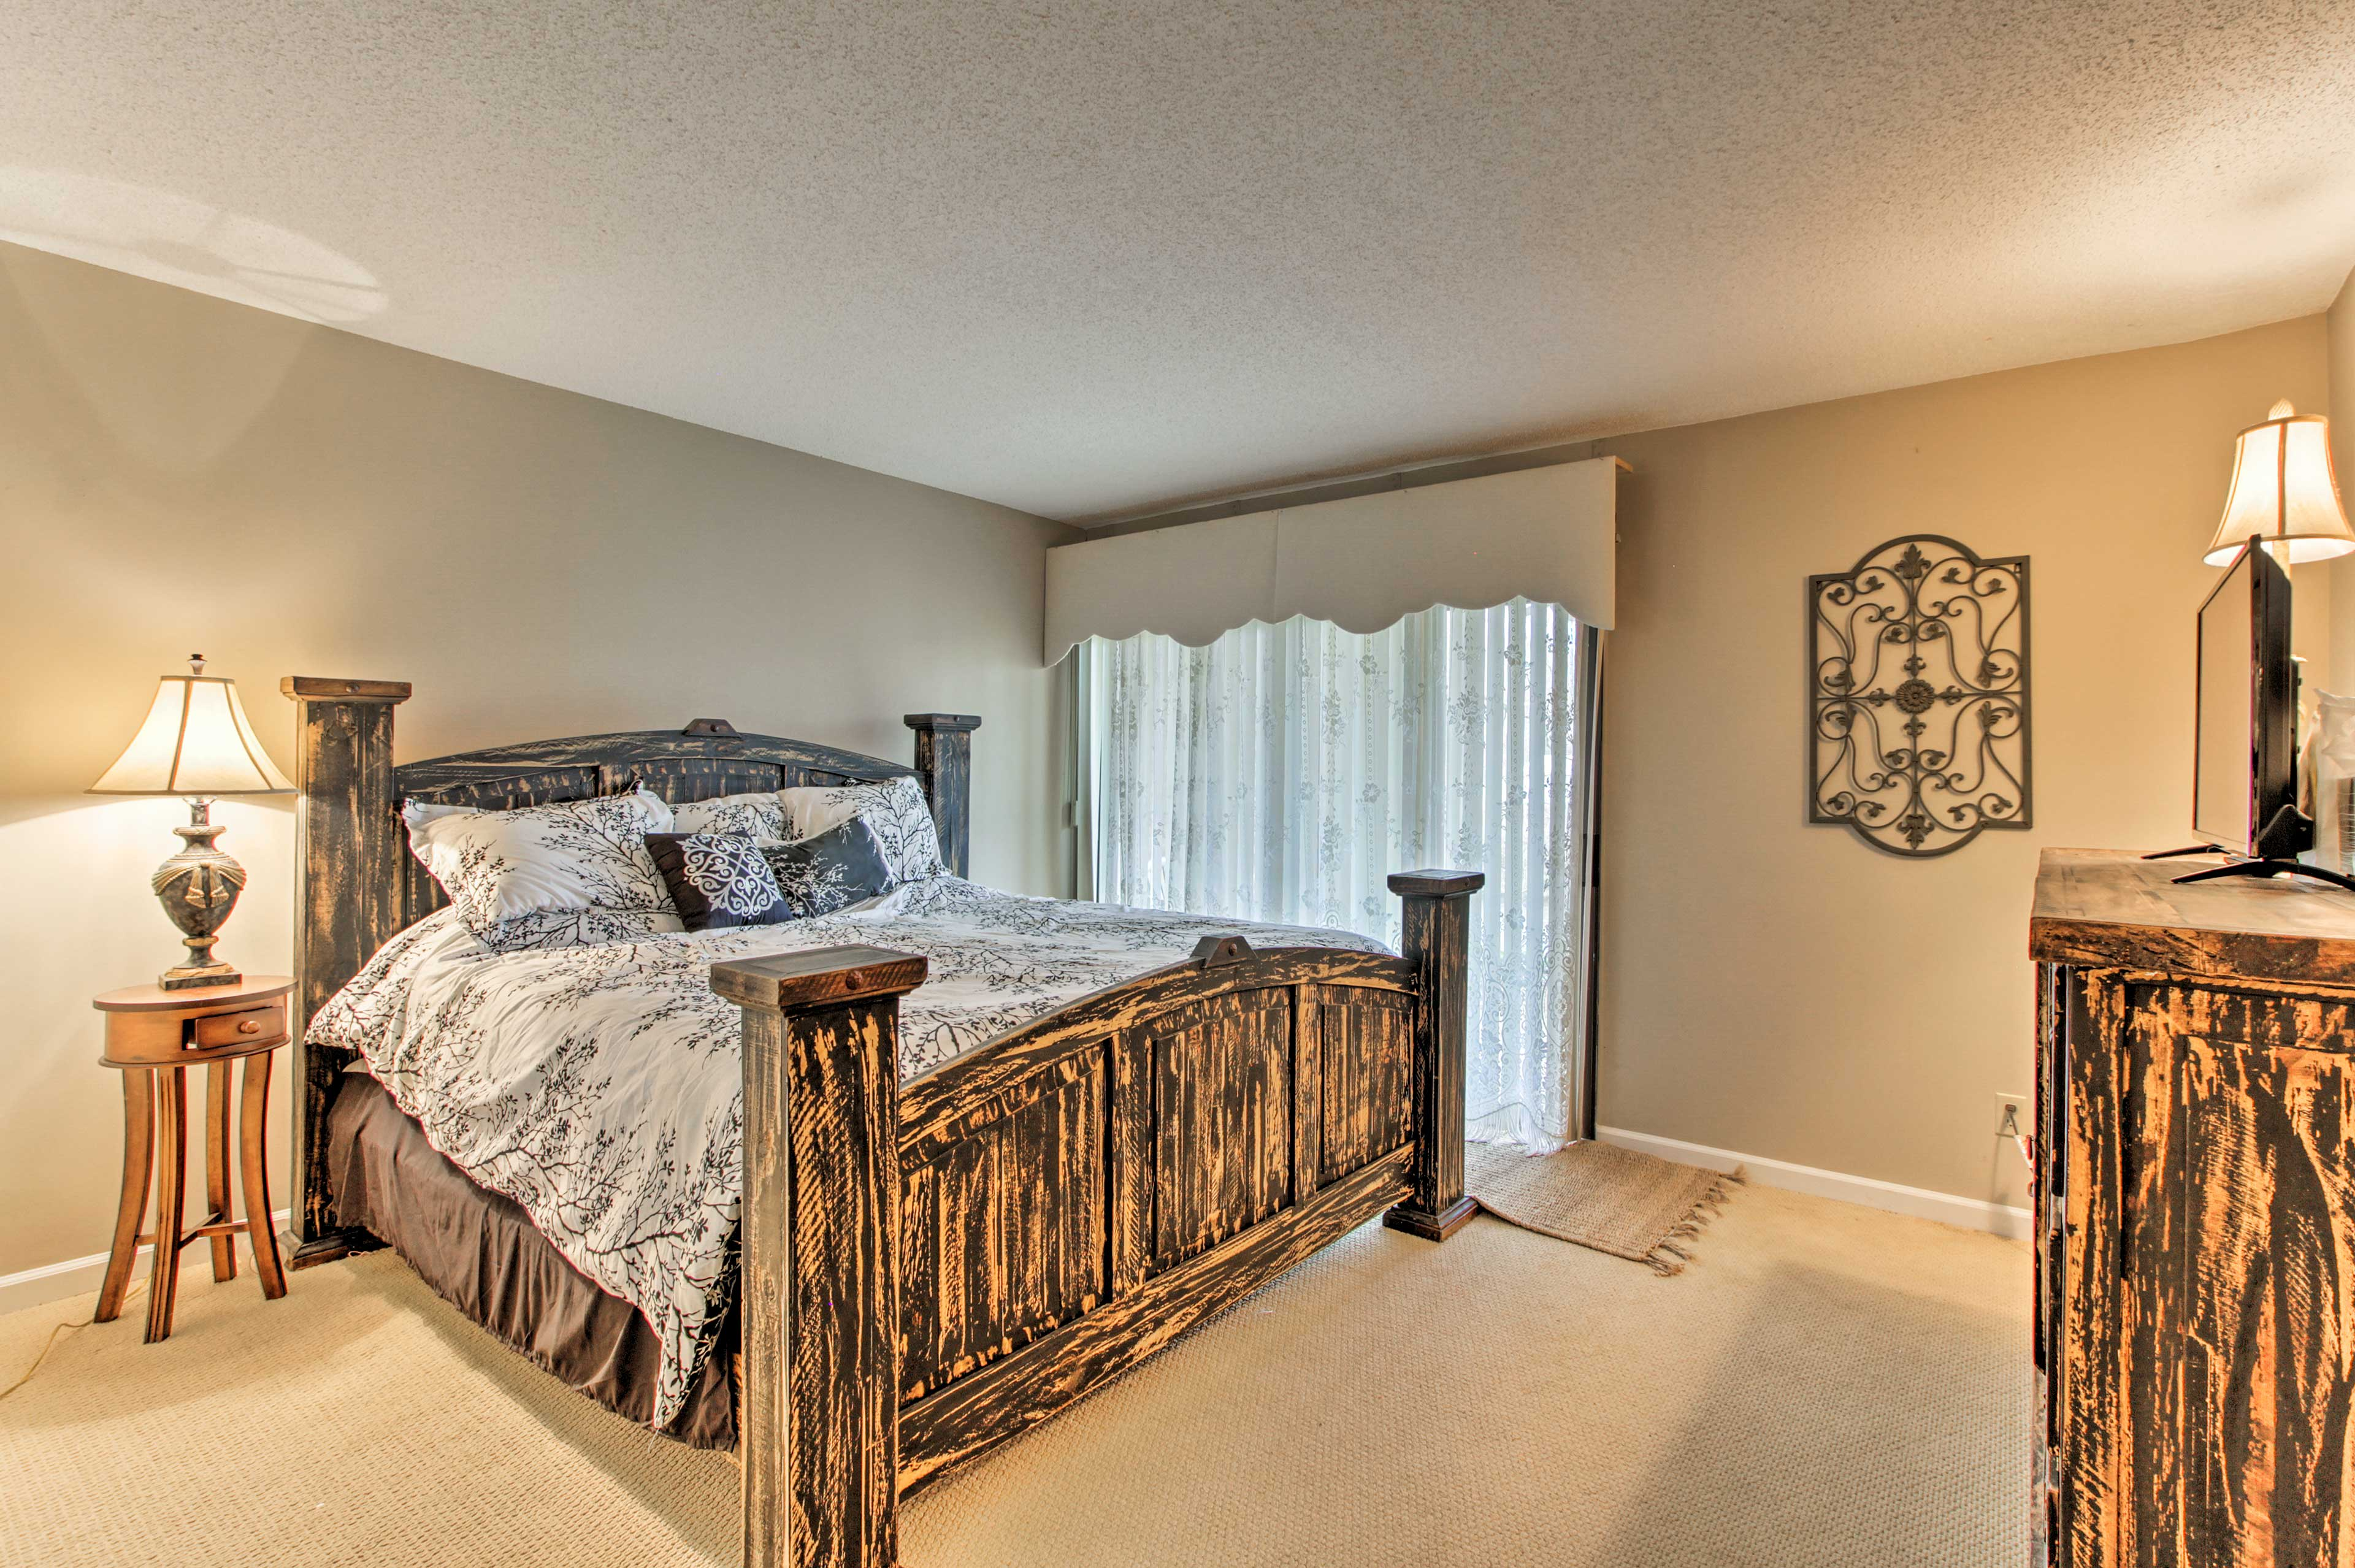 Rest easy on the king-sized bed in the master bedroom.